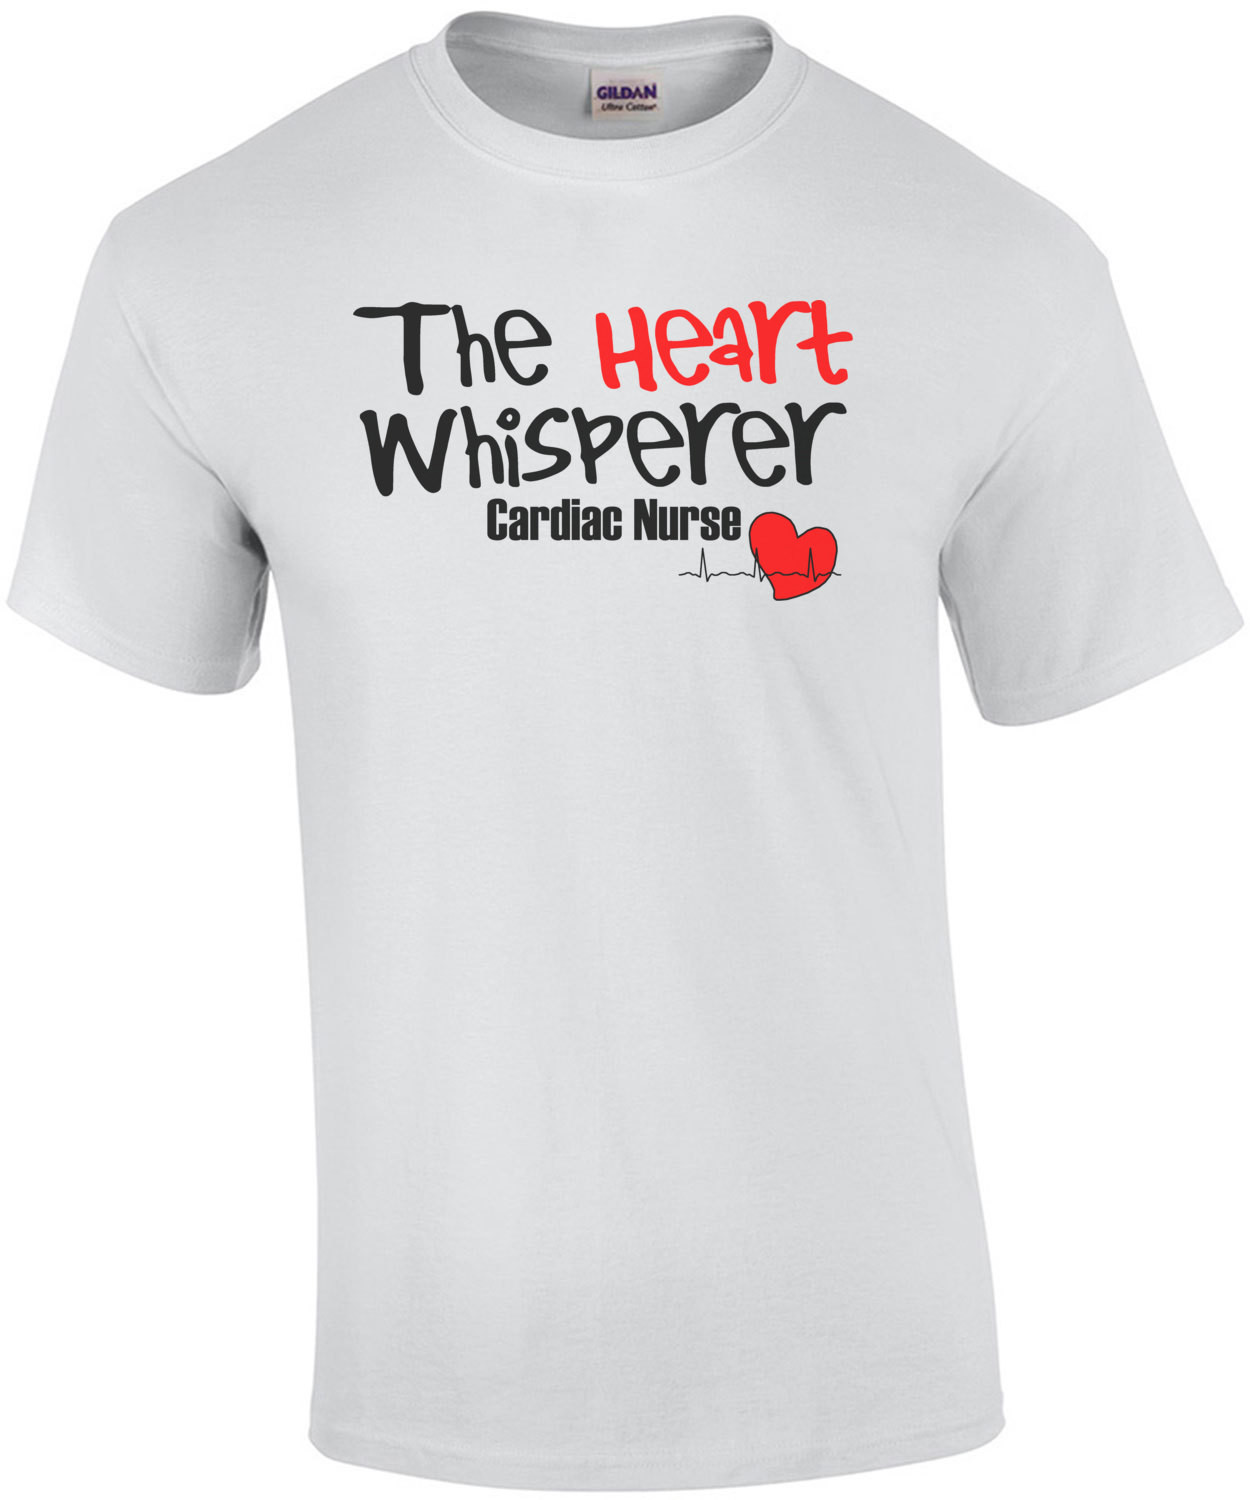 The Heart Whisperer Cardiac Nurse T-Shirt